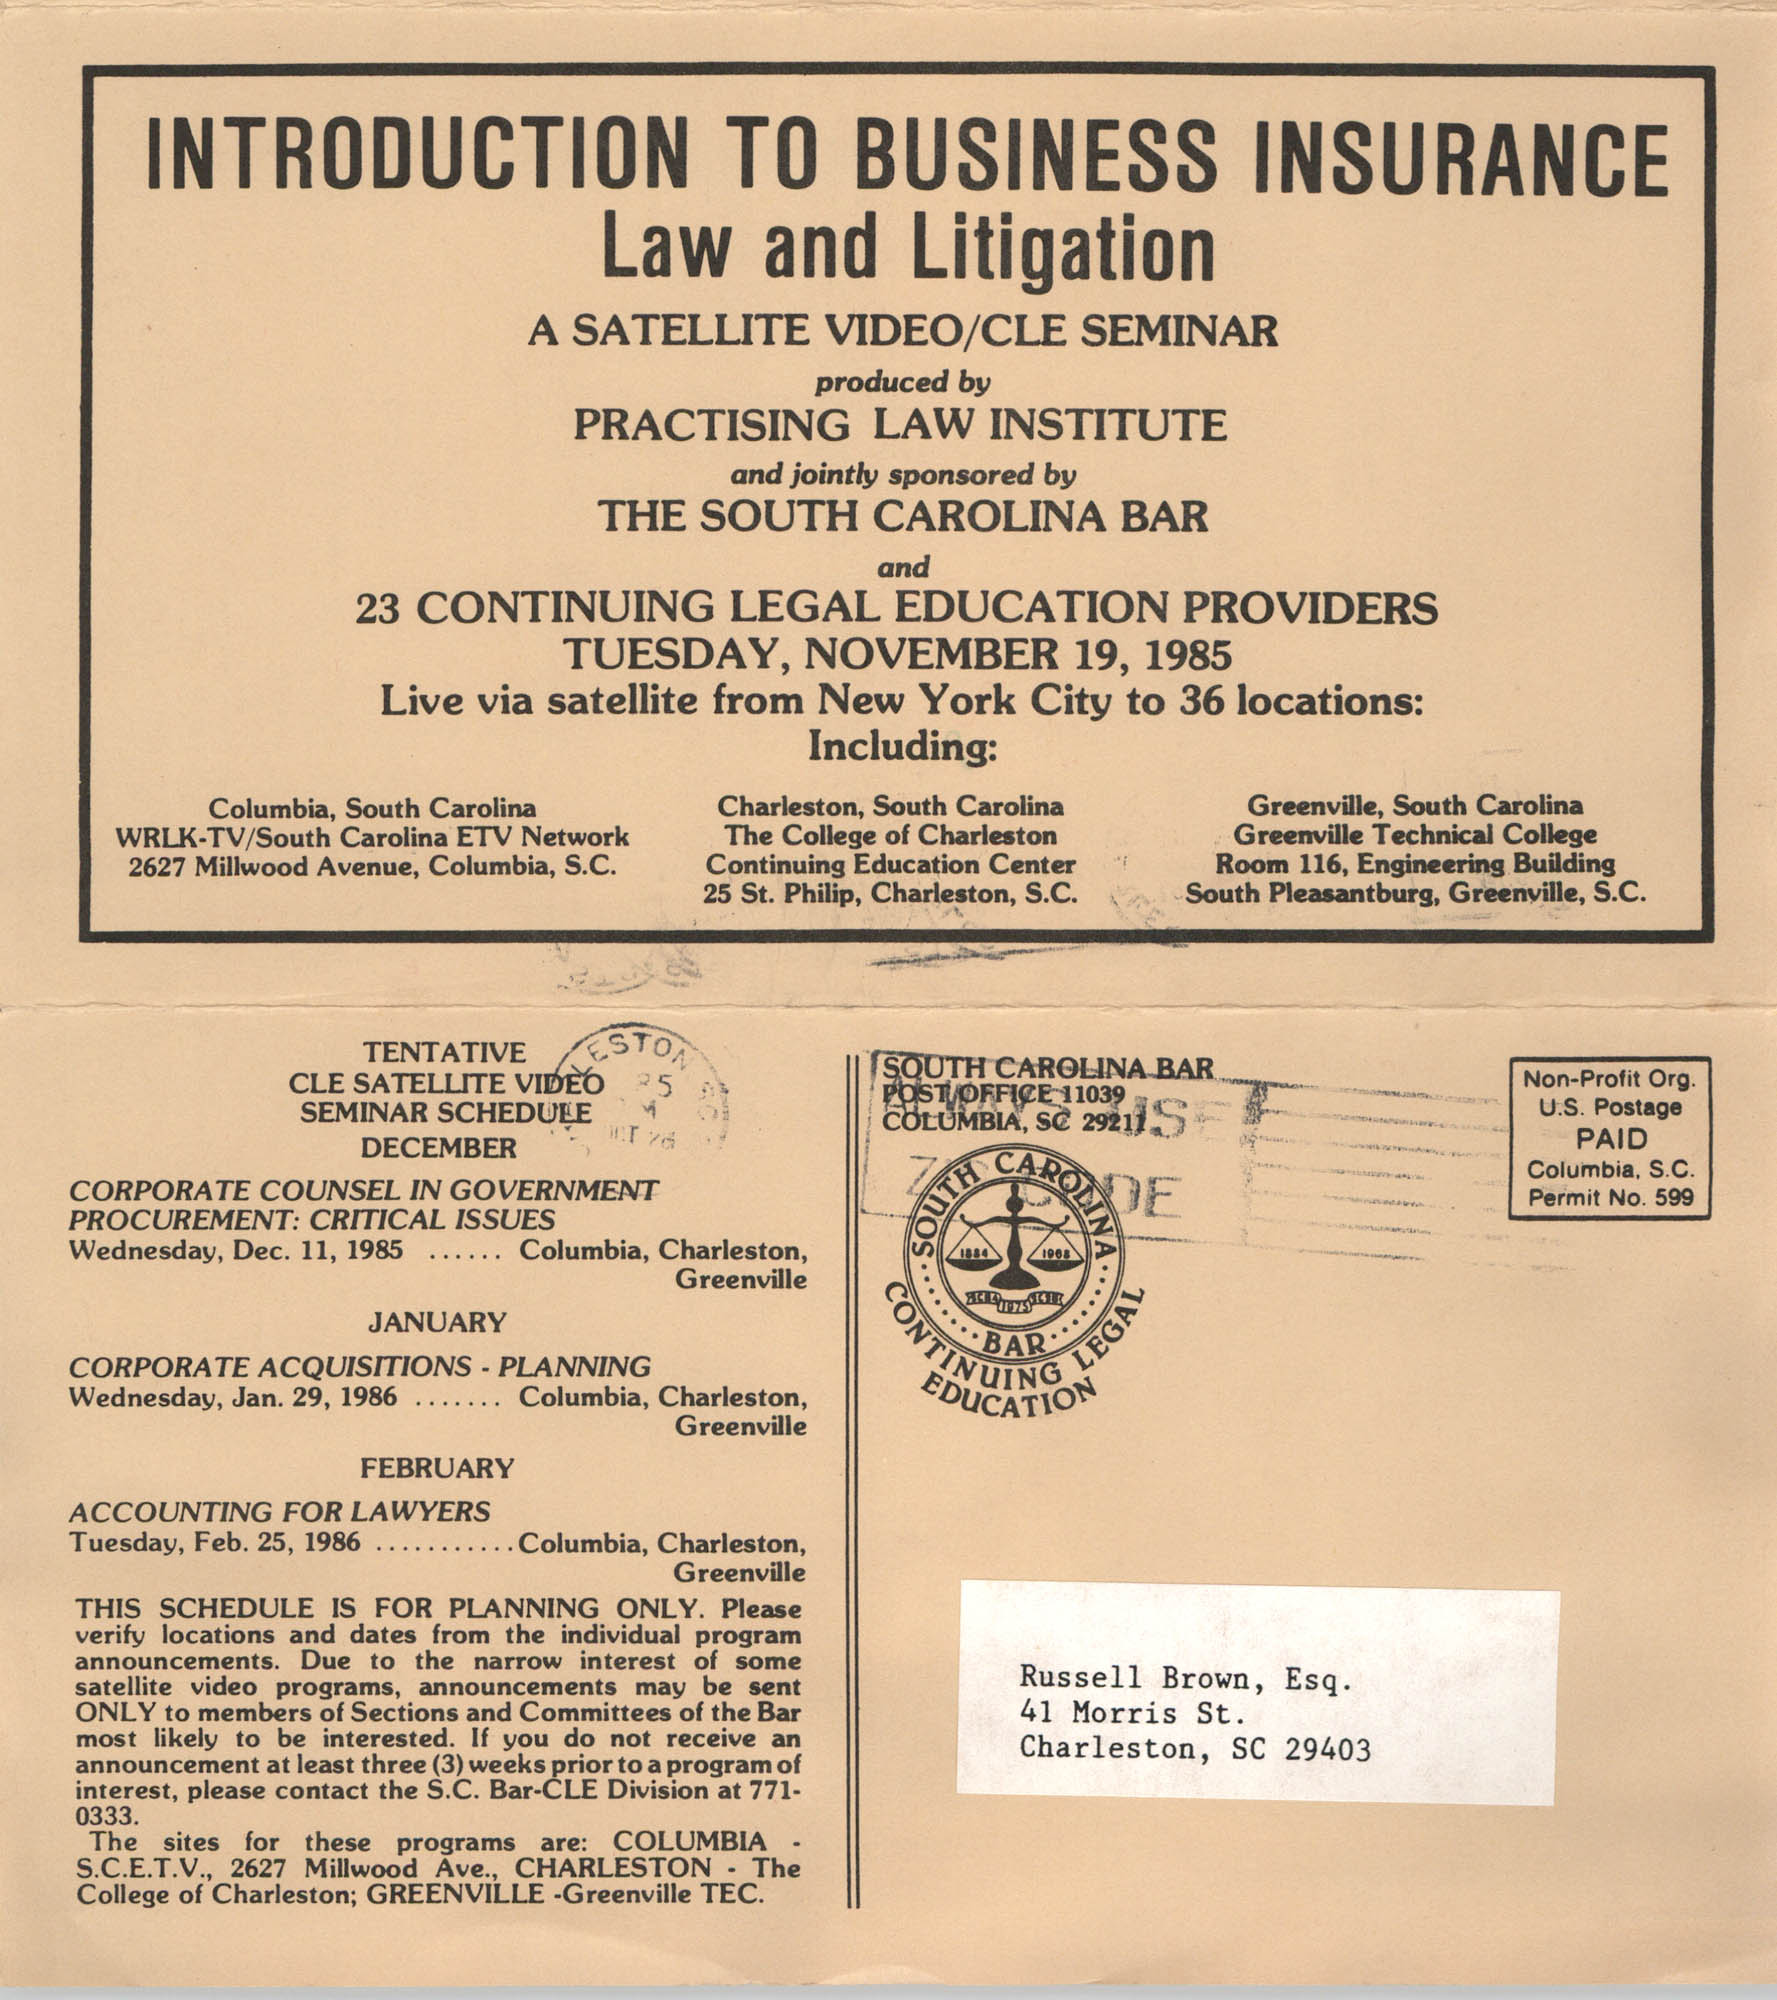 Introduction to Business Insurance Law and Litigation, Satellite Vide/CLE Seminar Pamphlet, November 19, 1985, Russell Brown